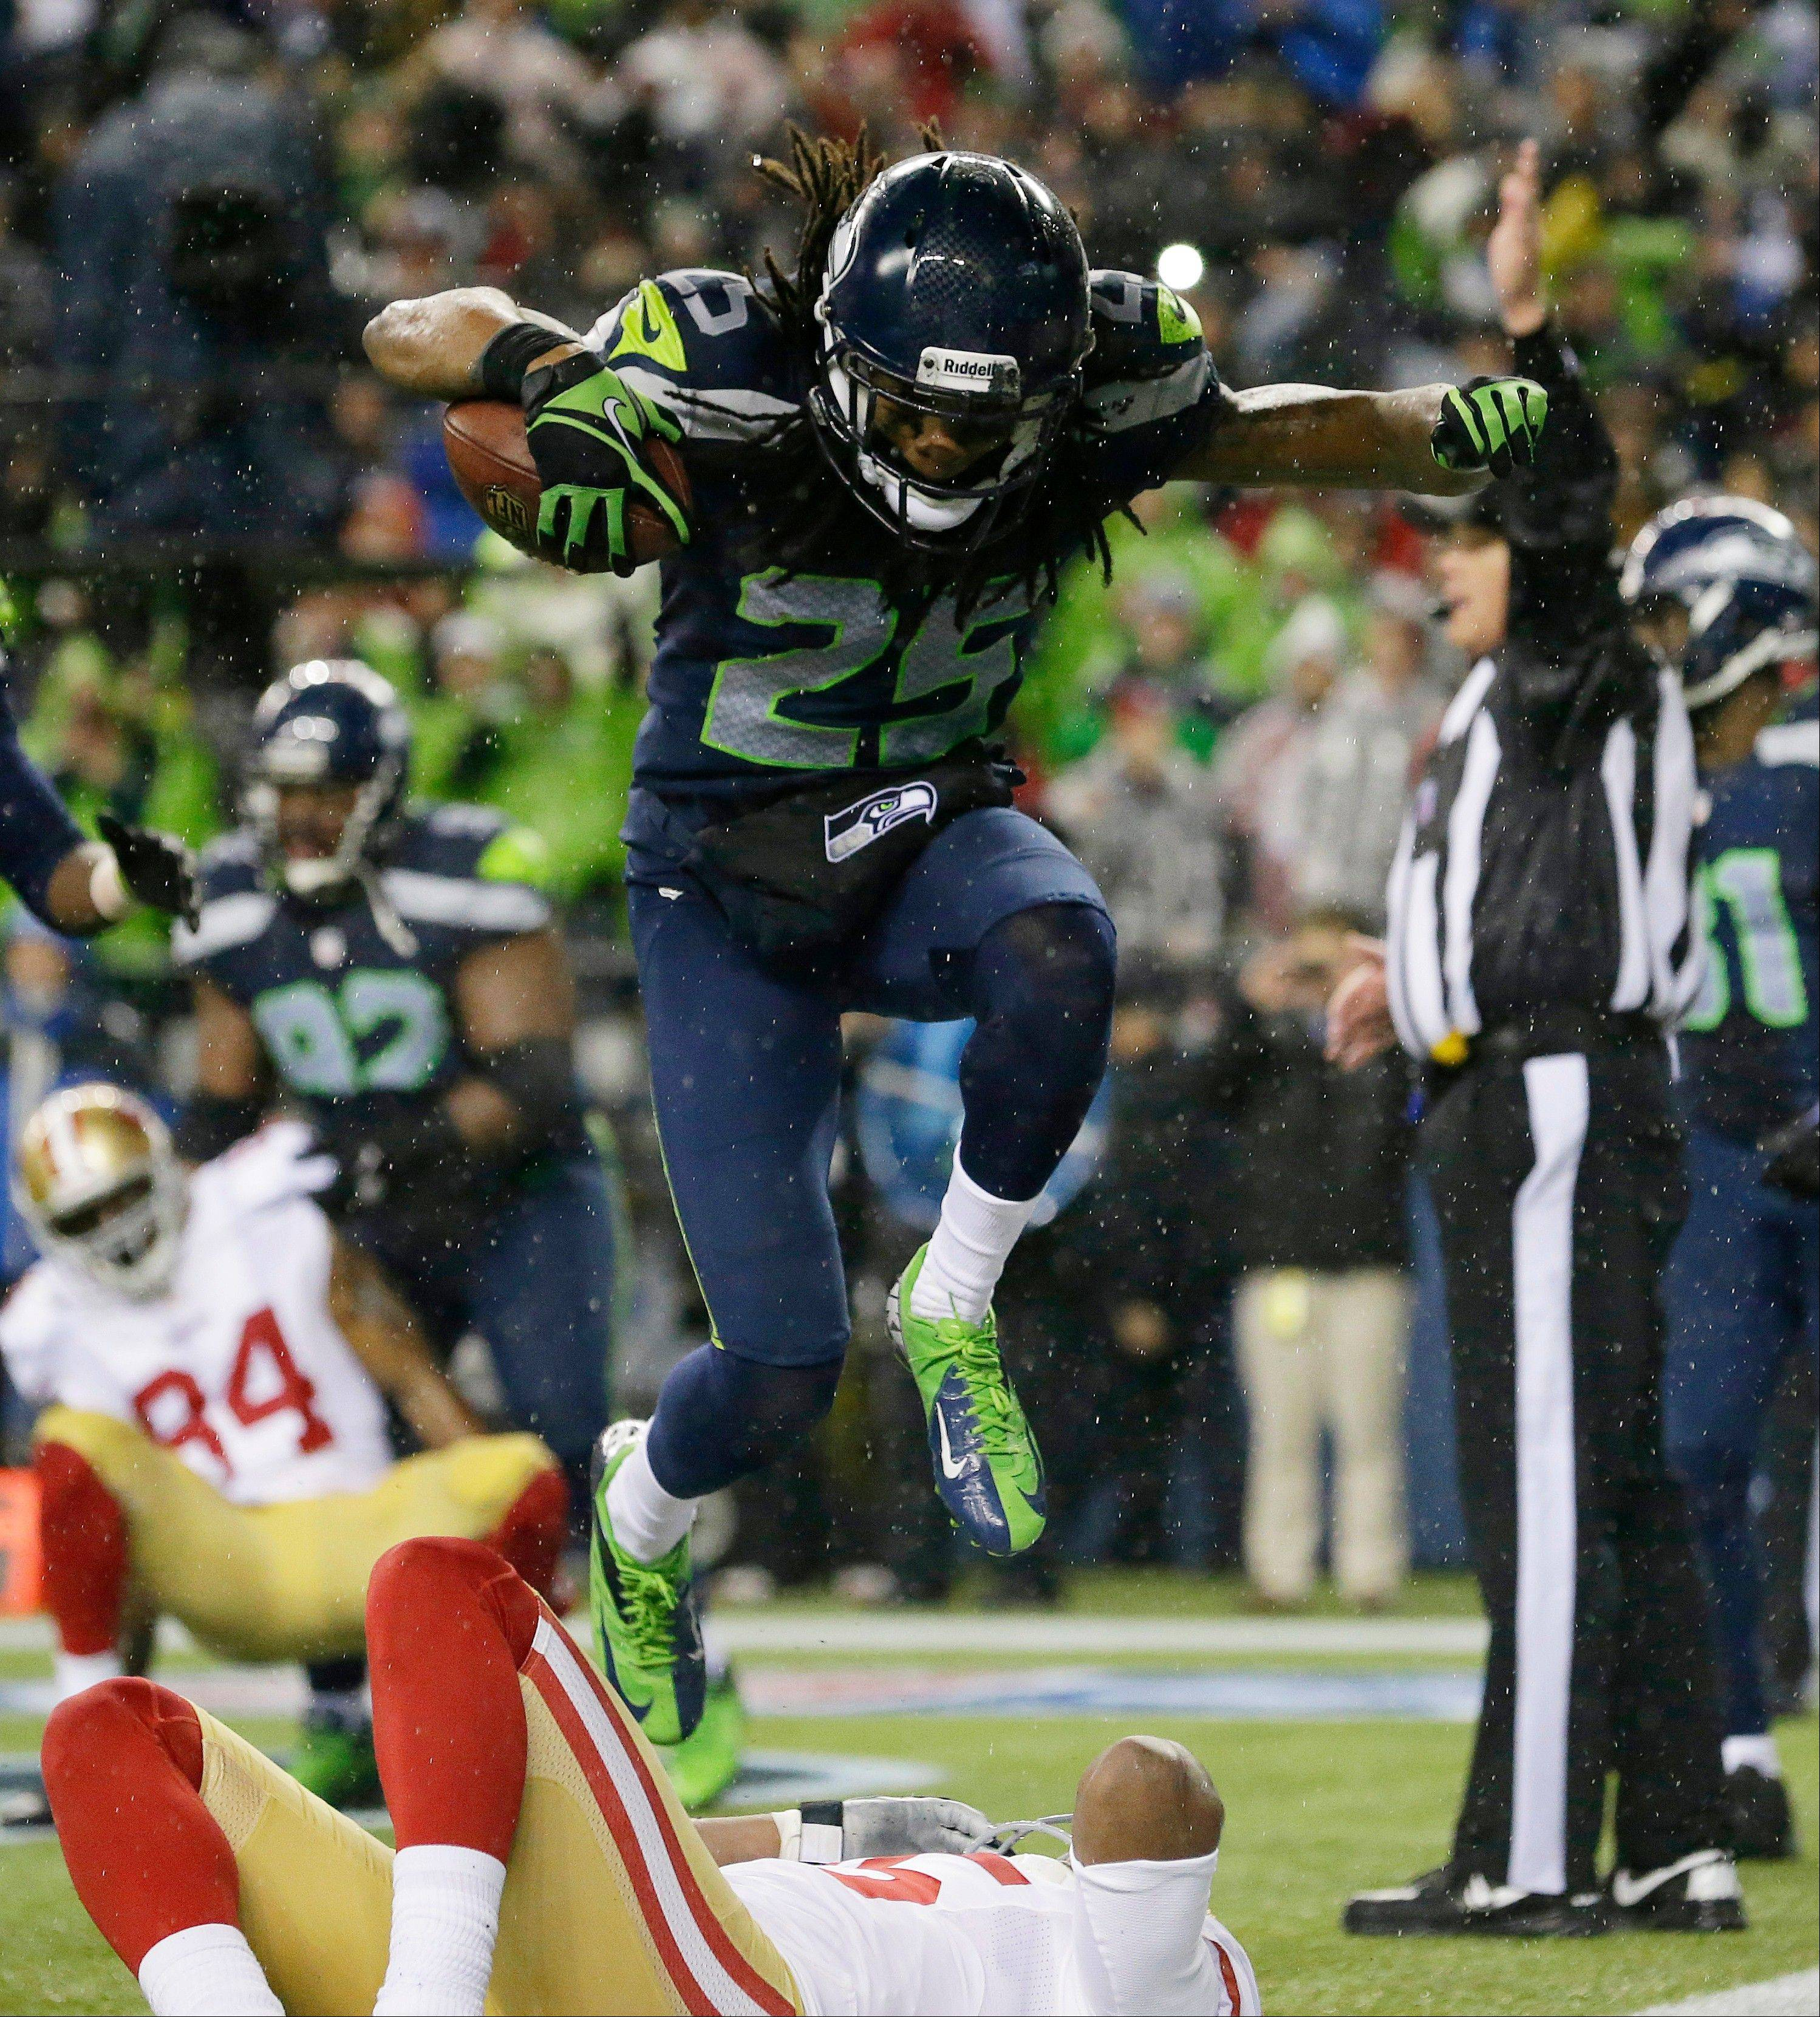 Seattle Seahawks' Richard Sherman jumps over San Francisco 49ers' Michael Crabtree as Sherman celebrates his interception in the second half of an NFL football game, Sunday, Dec. 23, 2012, in Seattle.